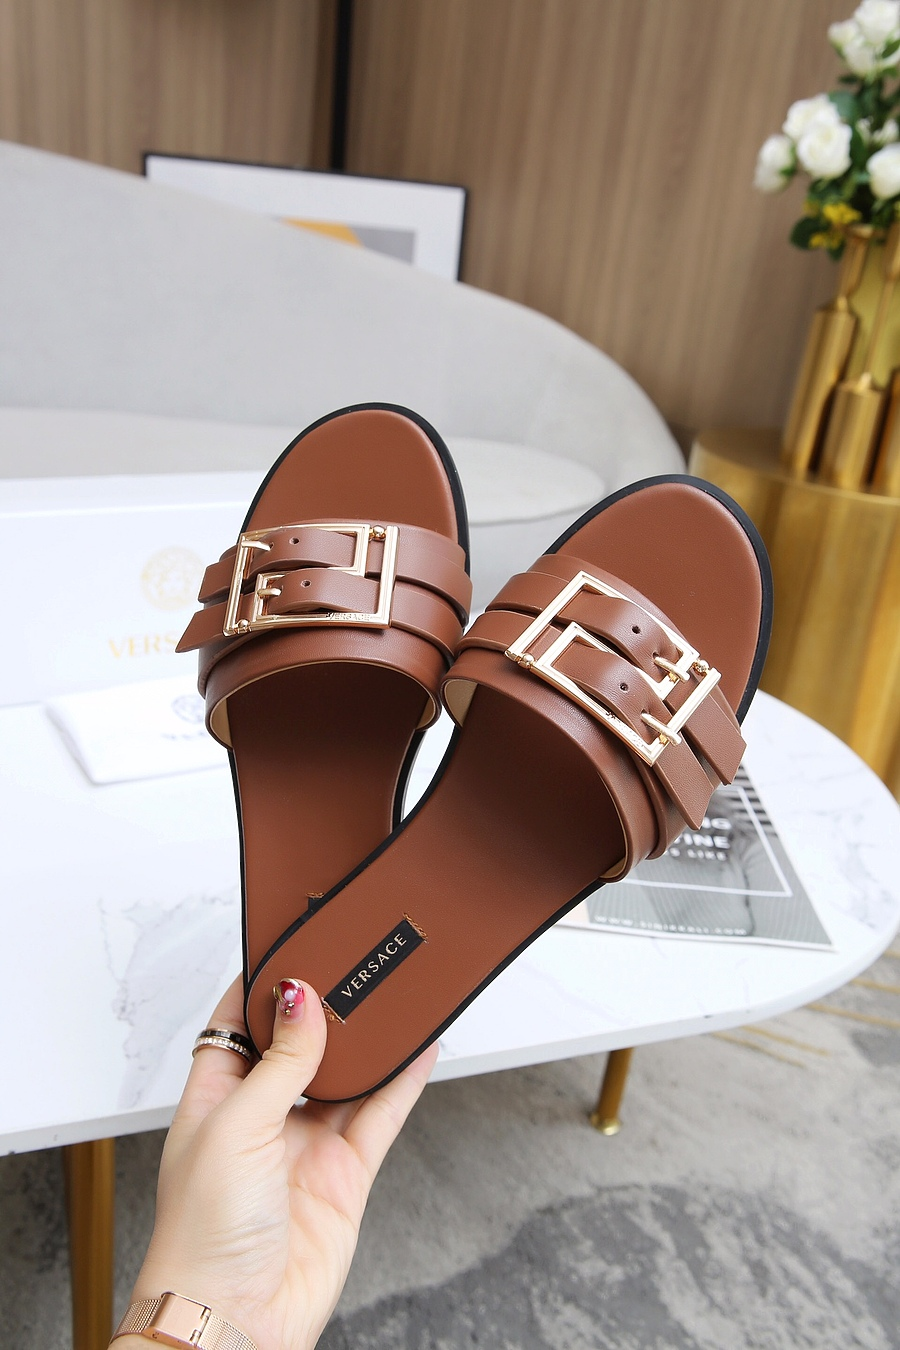 Versace shoes for versace Slippers for Women #443893 replica